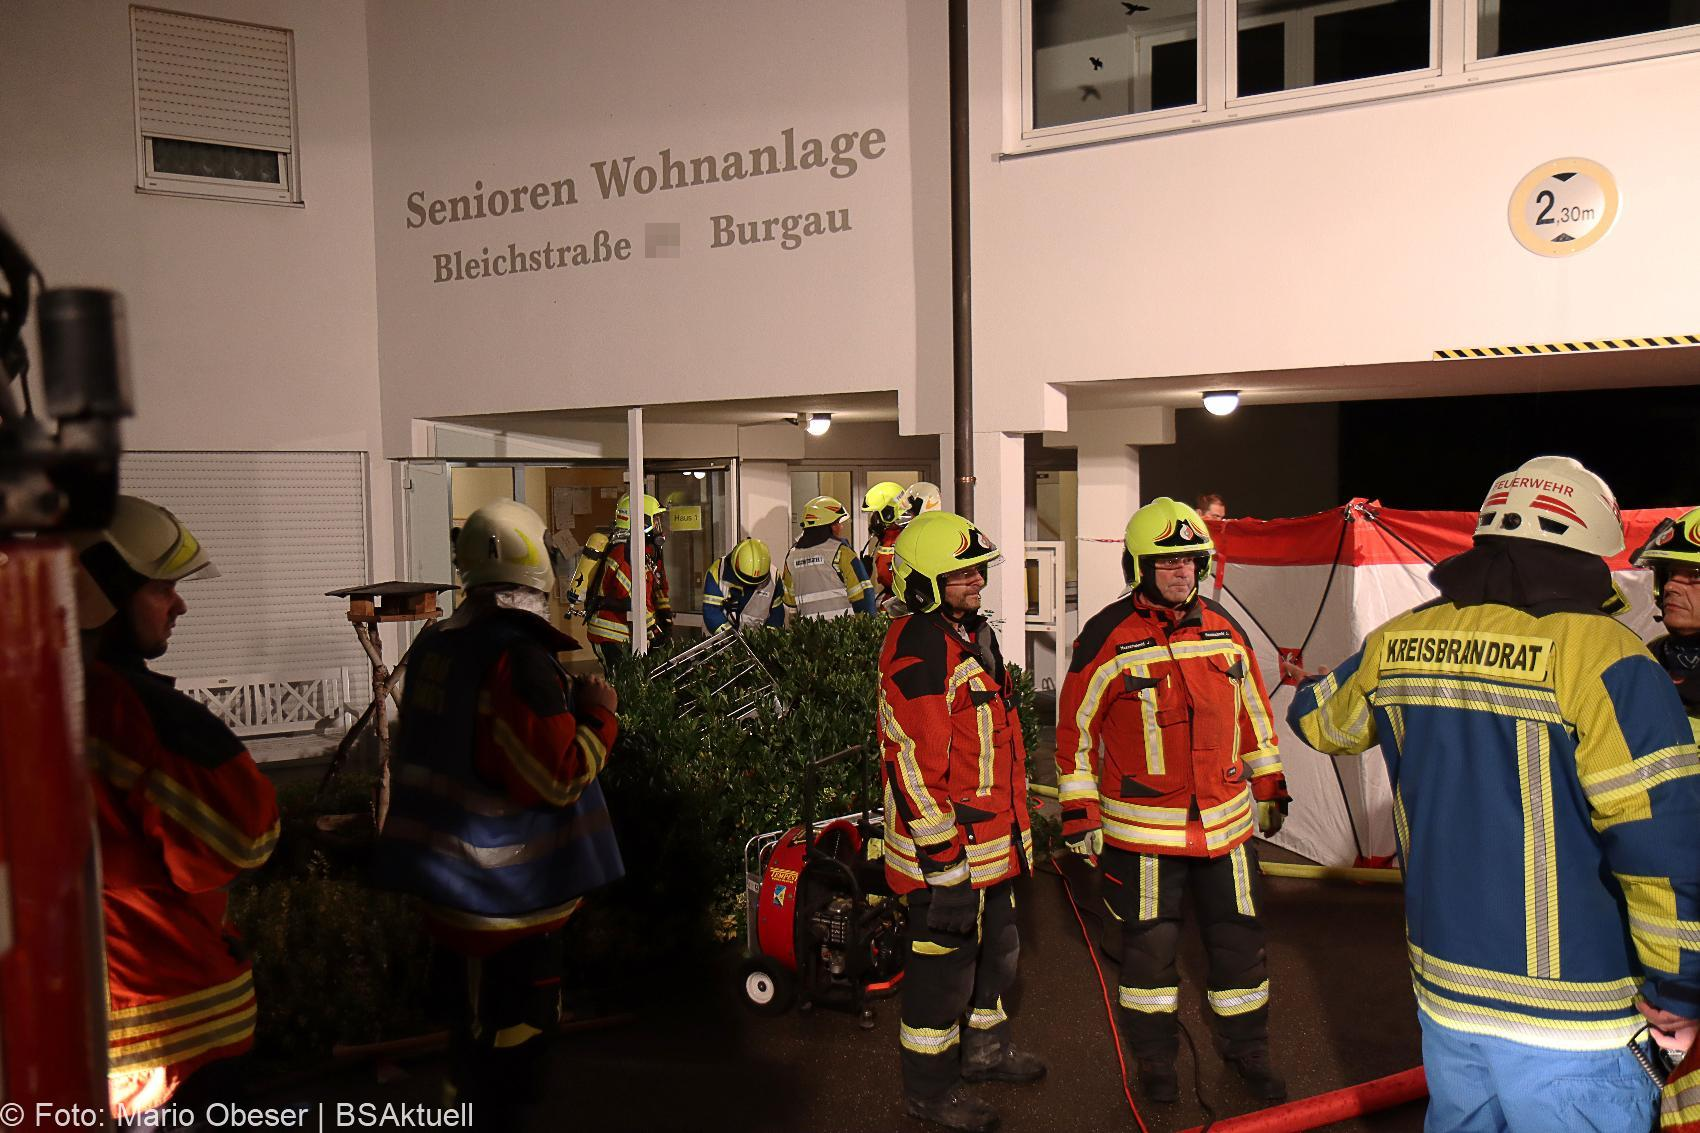 Zimmerbrand in Seniorenheim Burgau 1 Person verstorben 31082020 16